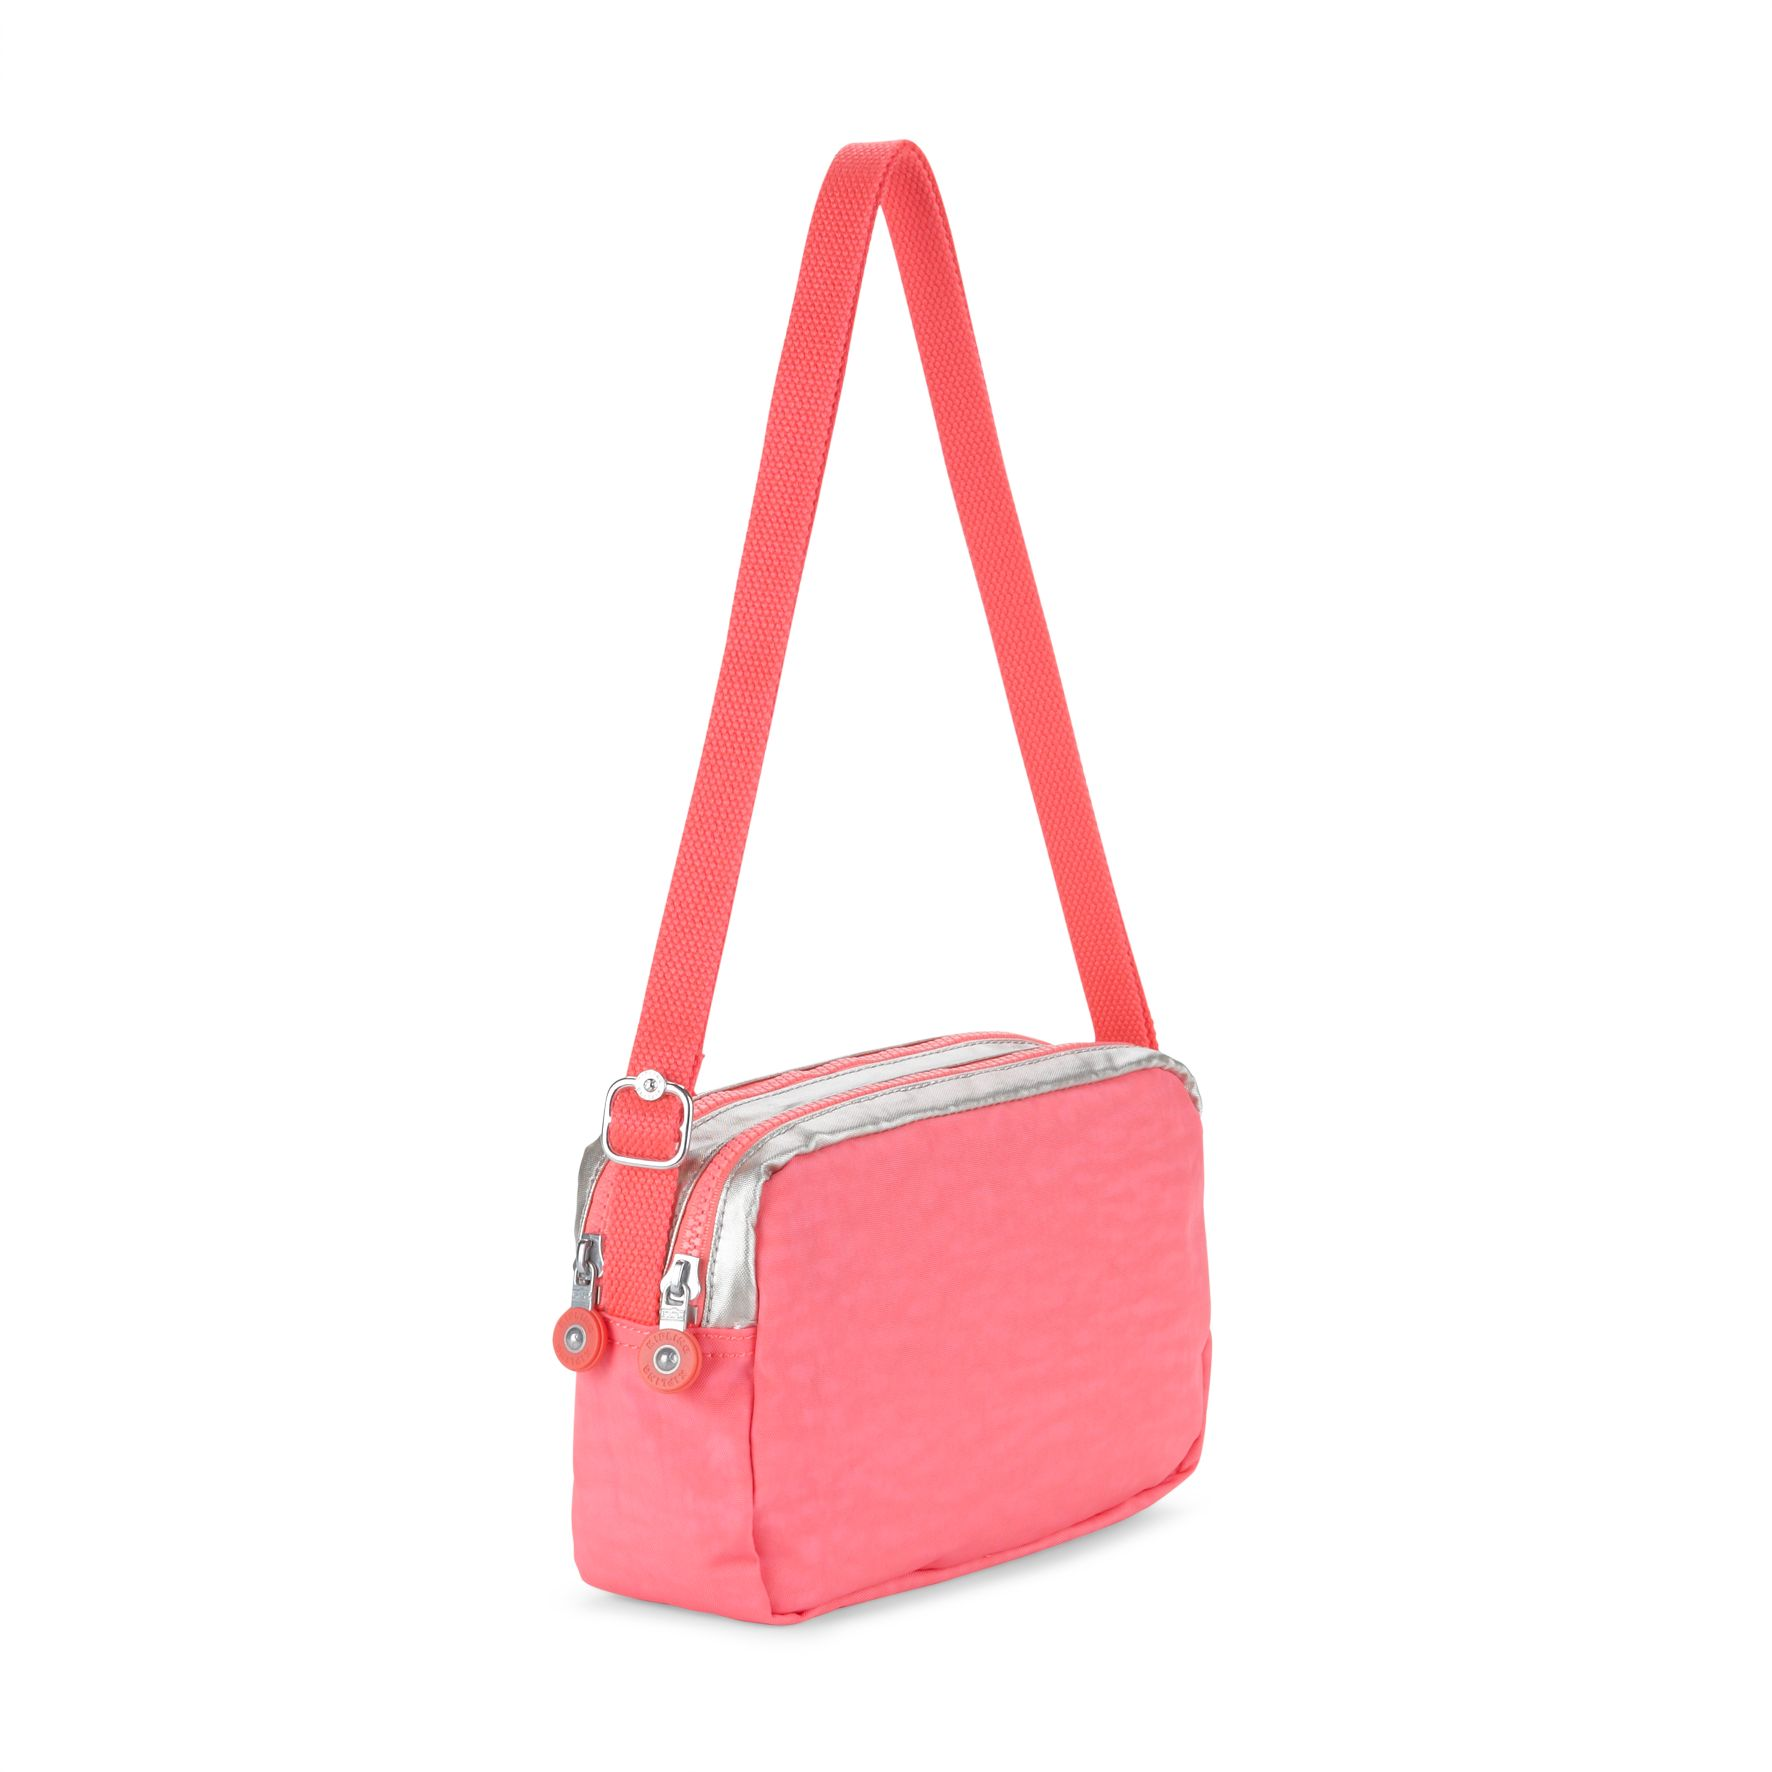 Haru small shoulder bag